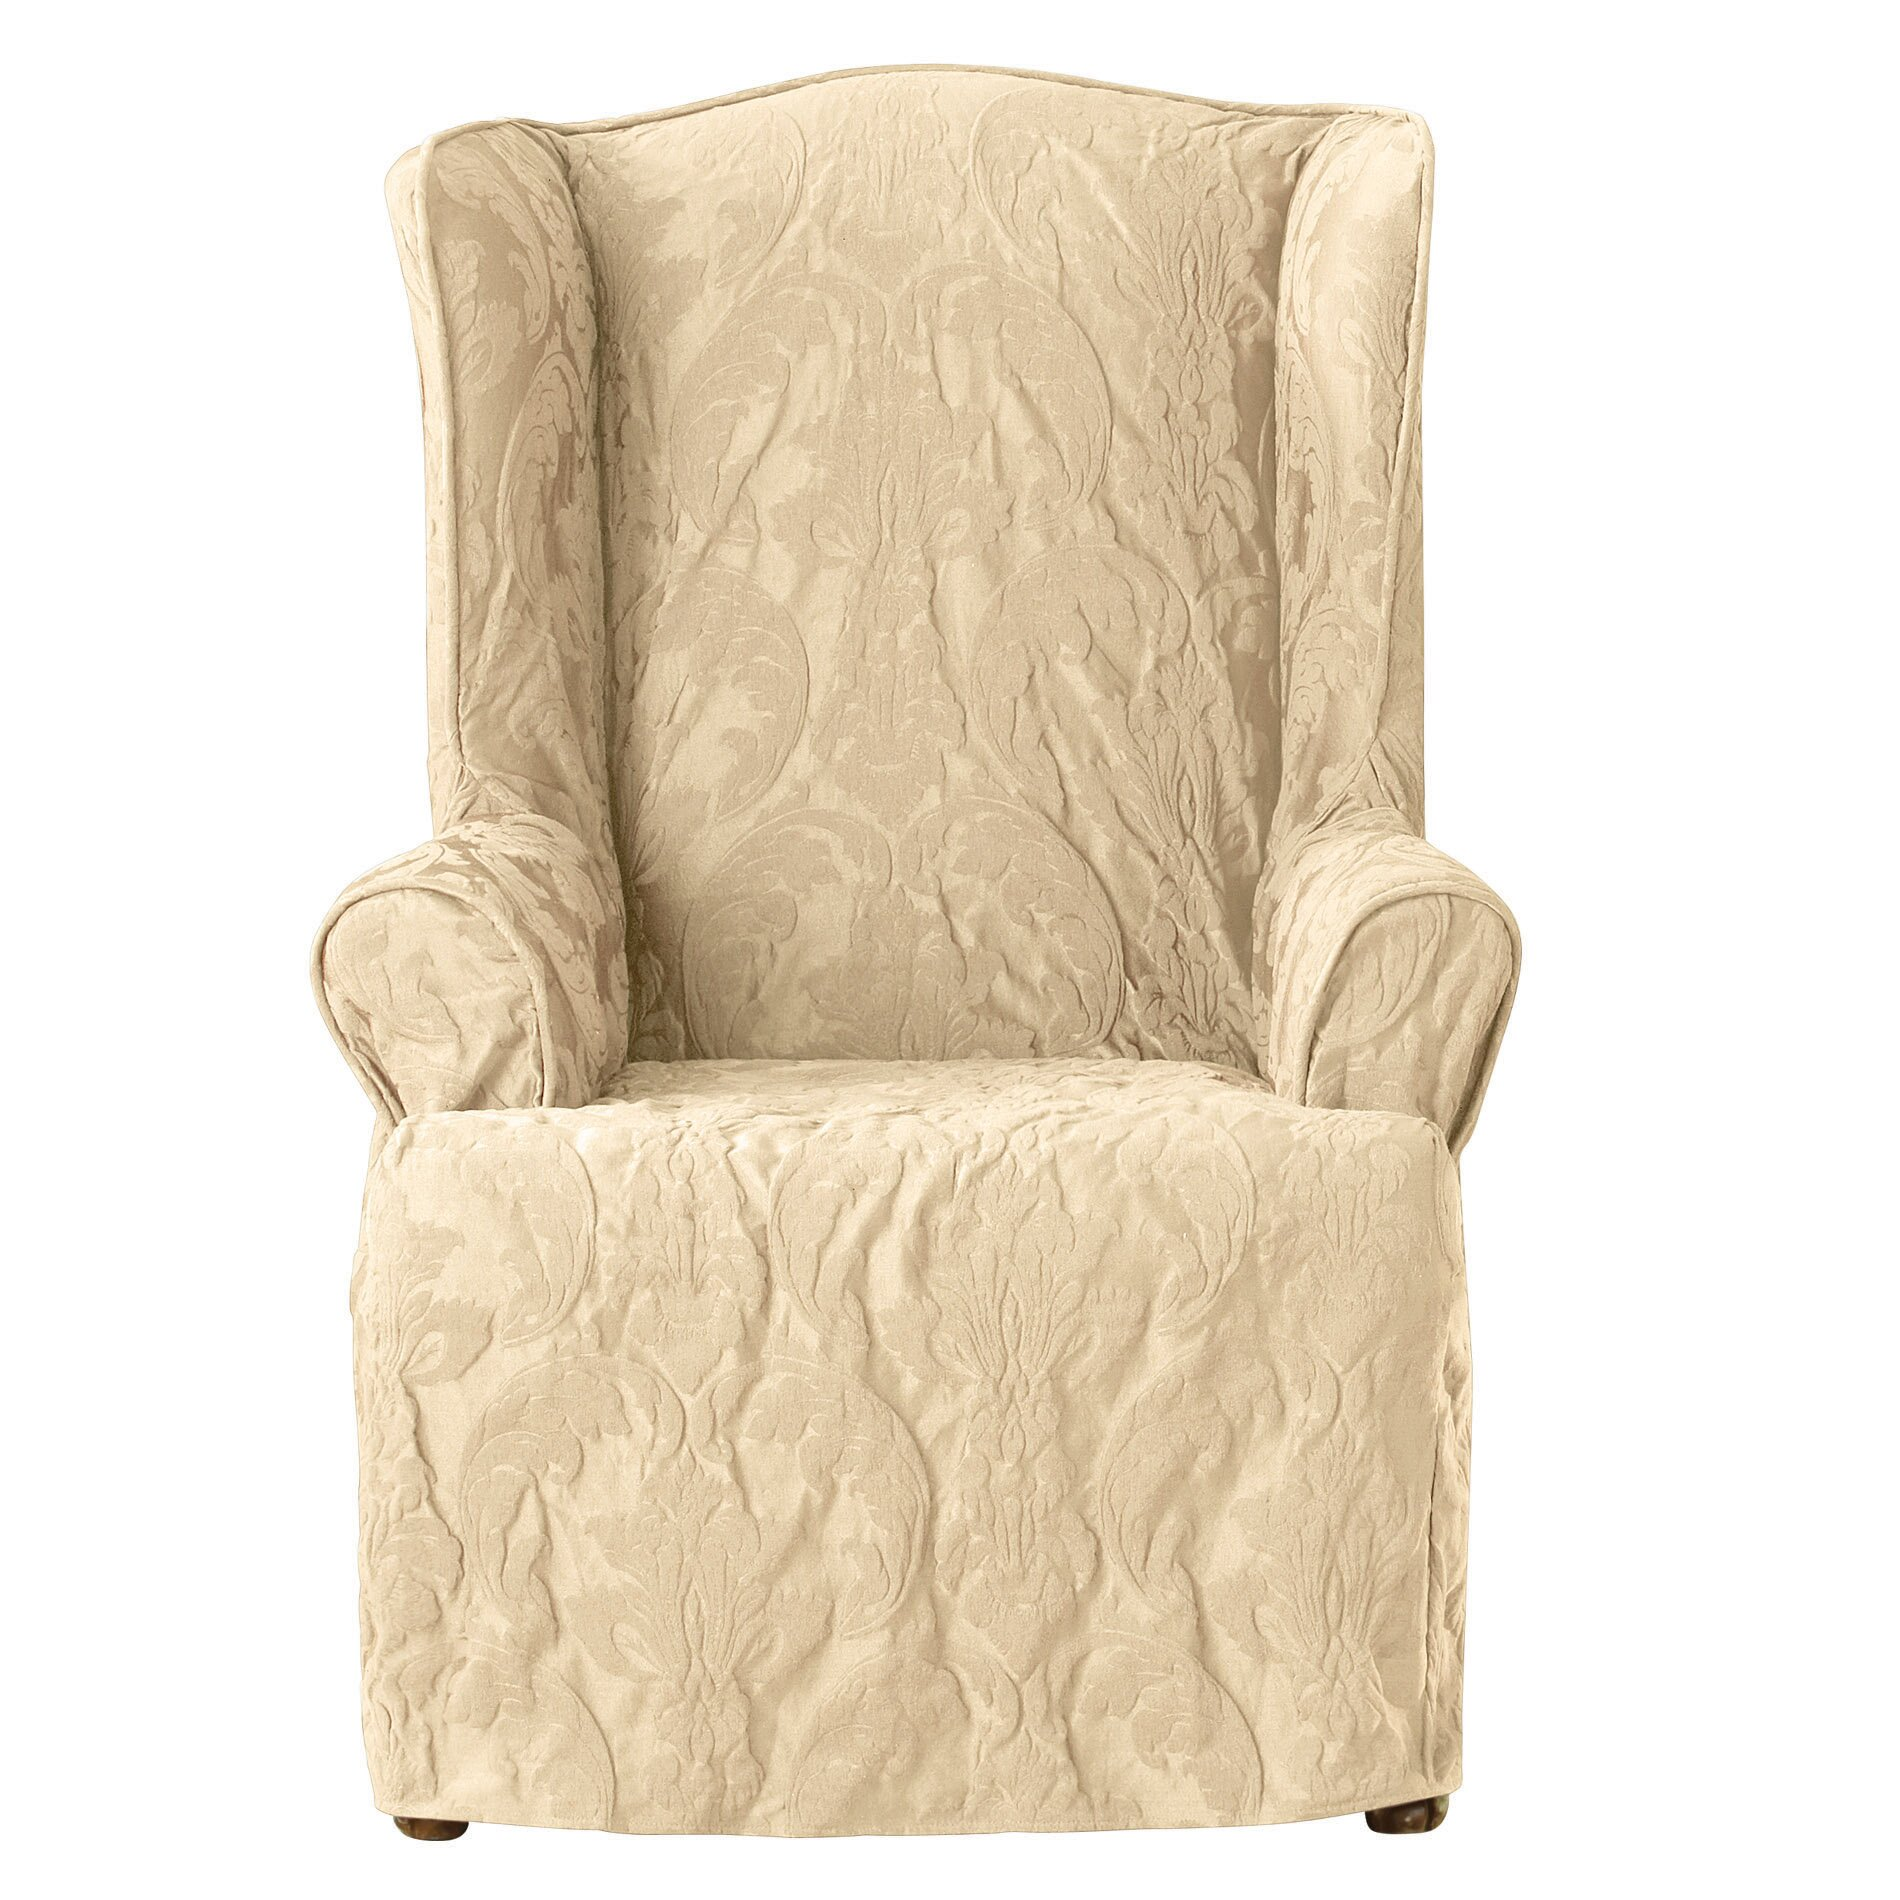 Wing Chair Slipcovers Youll Love Wayfair .